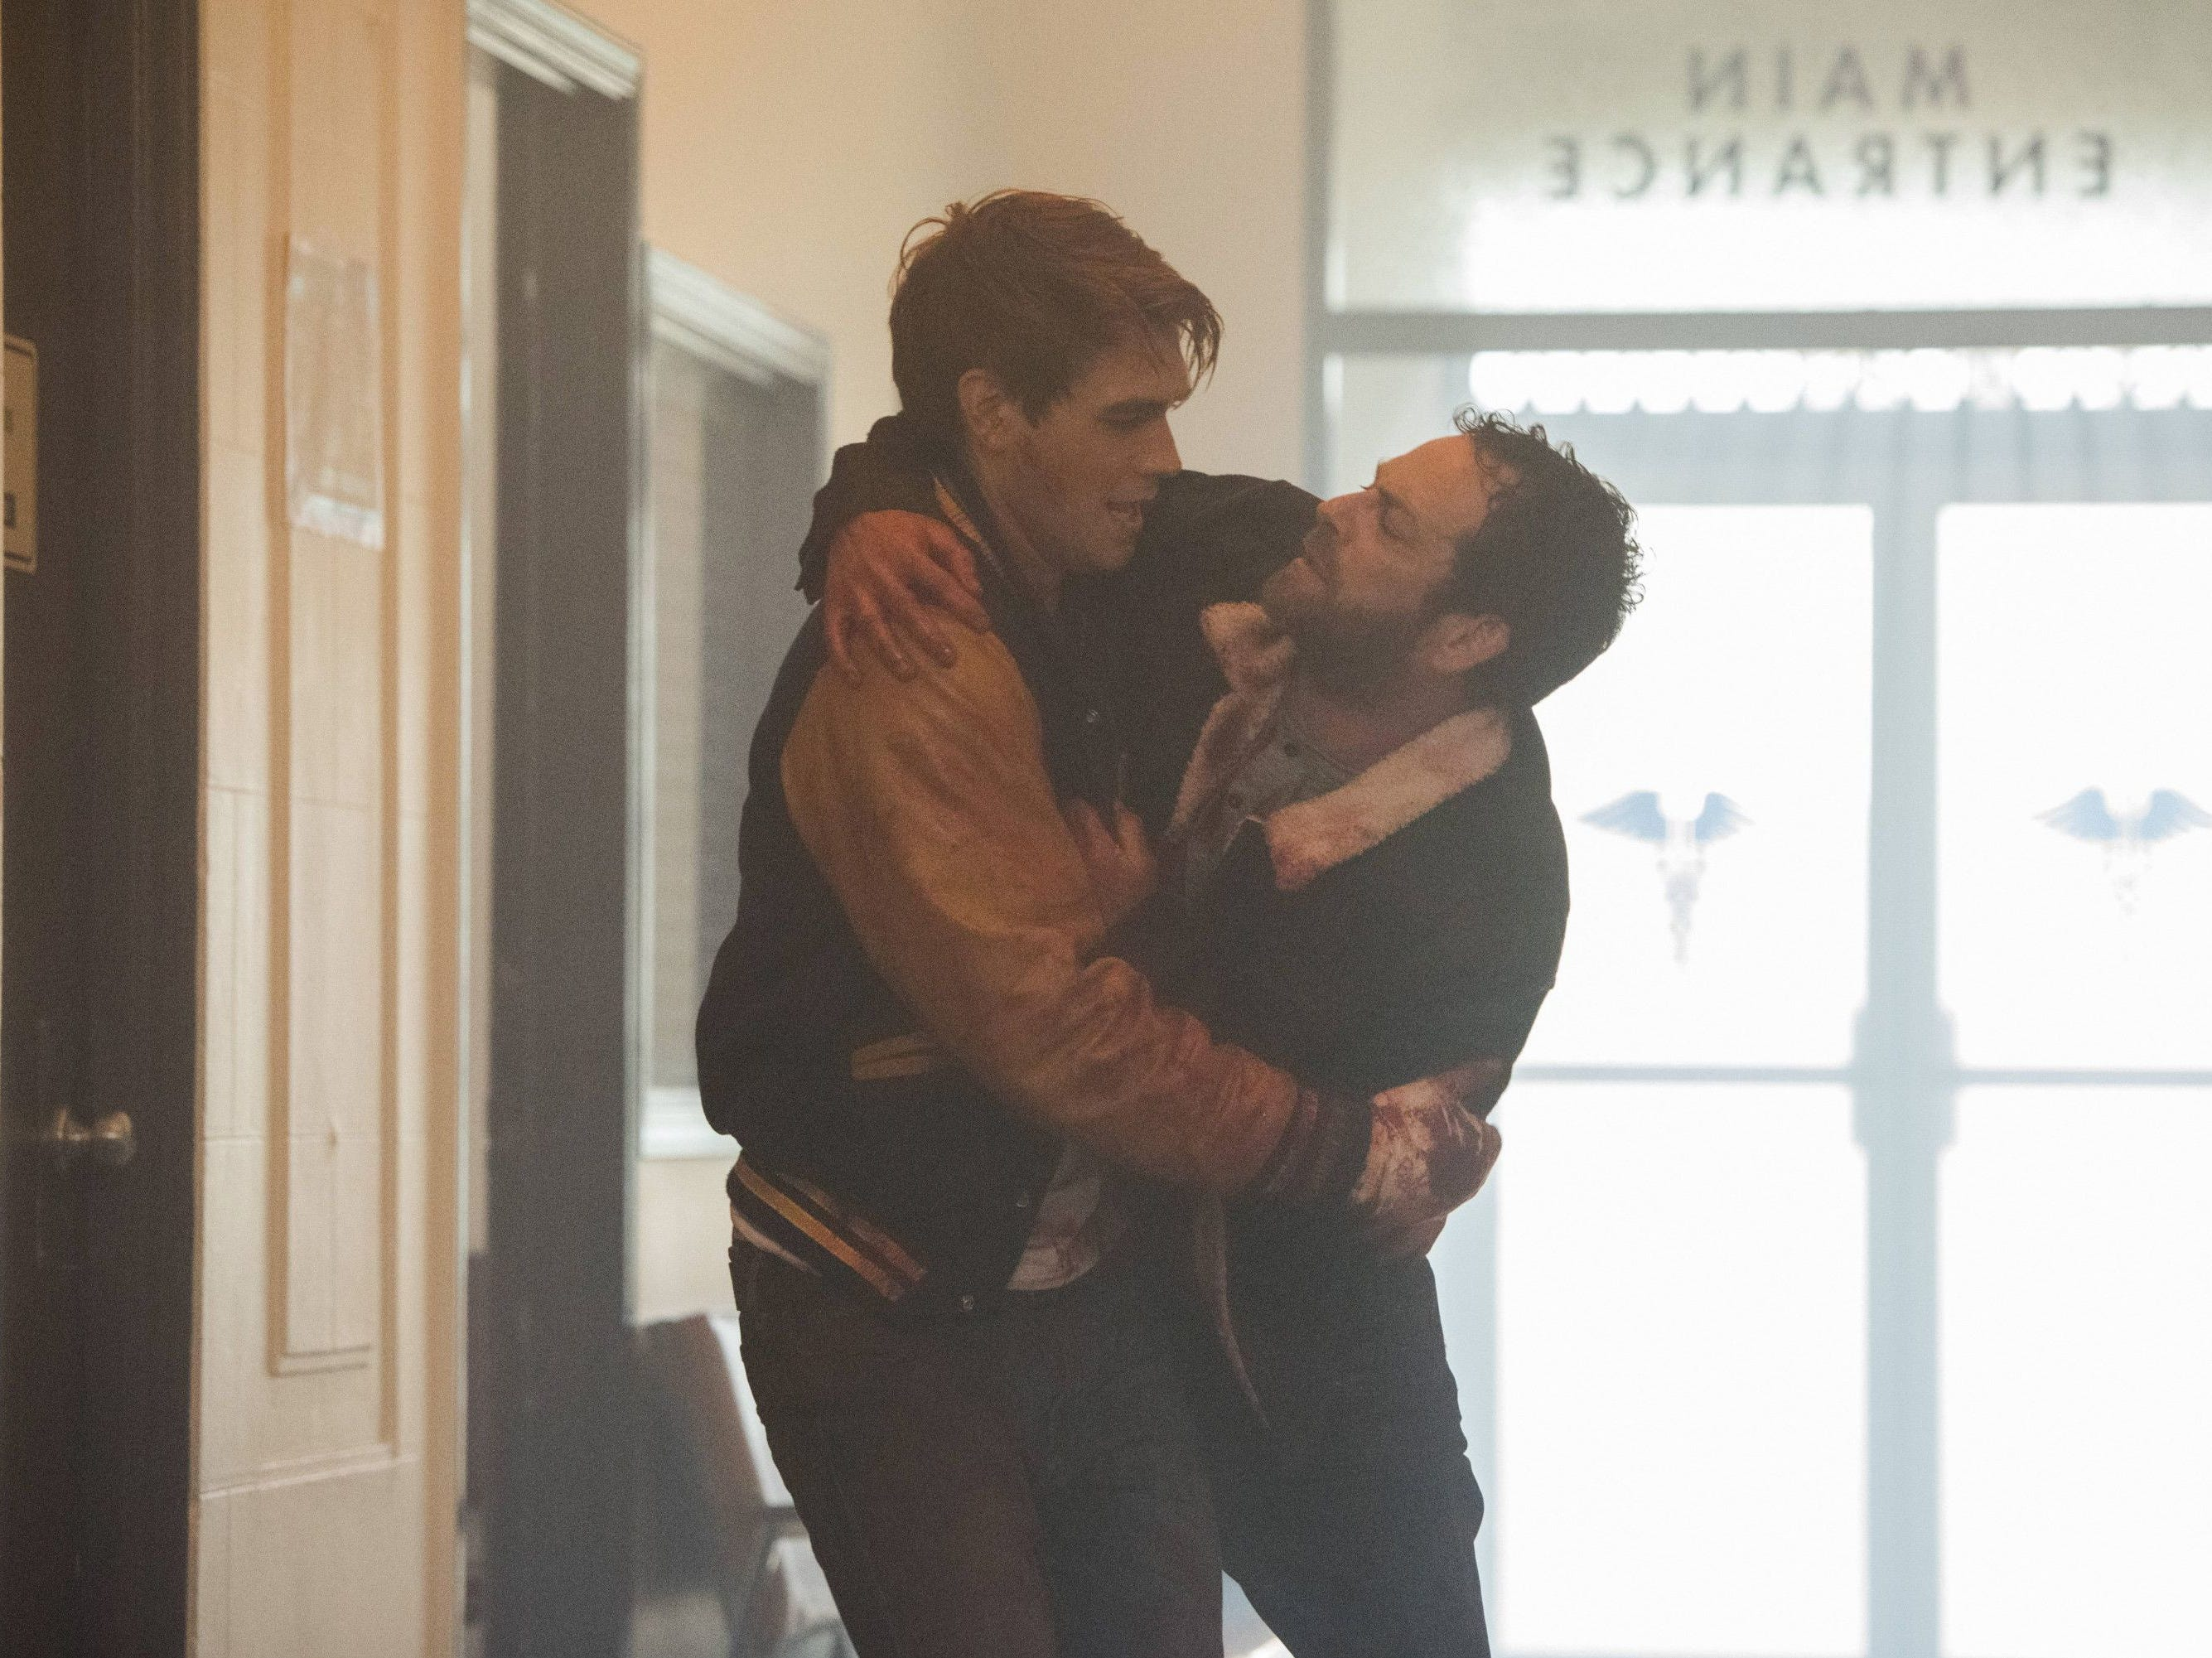 Archie (K.J. Apa, left) fights to save his dad (Luke Perry) after he's shot in 'Riverdale.'